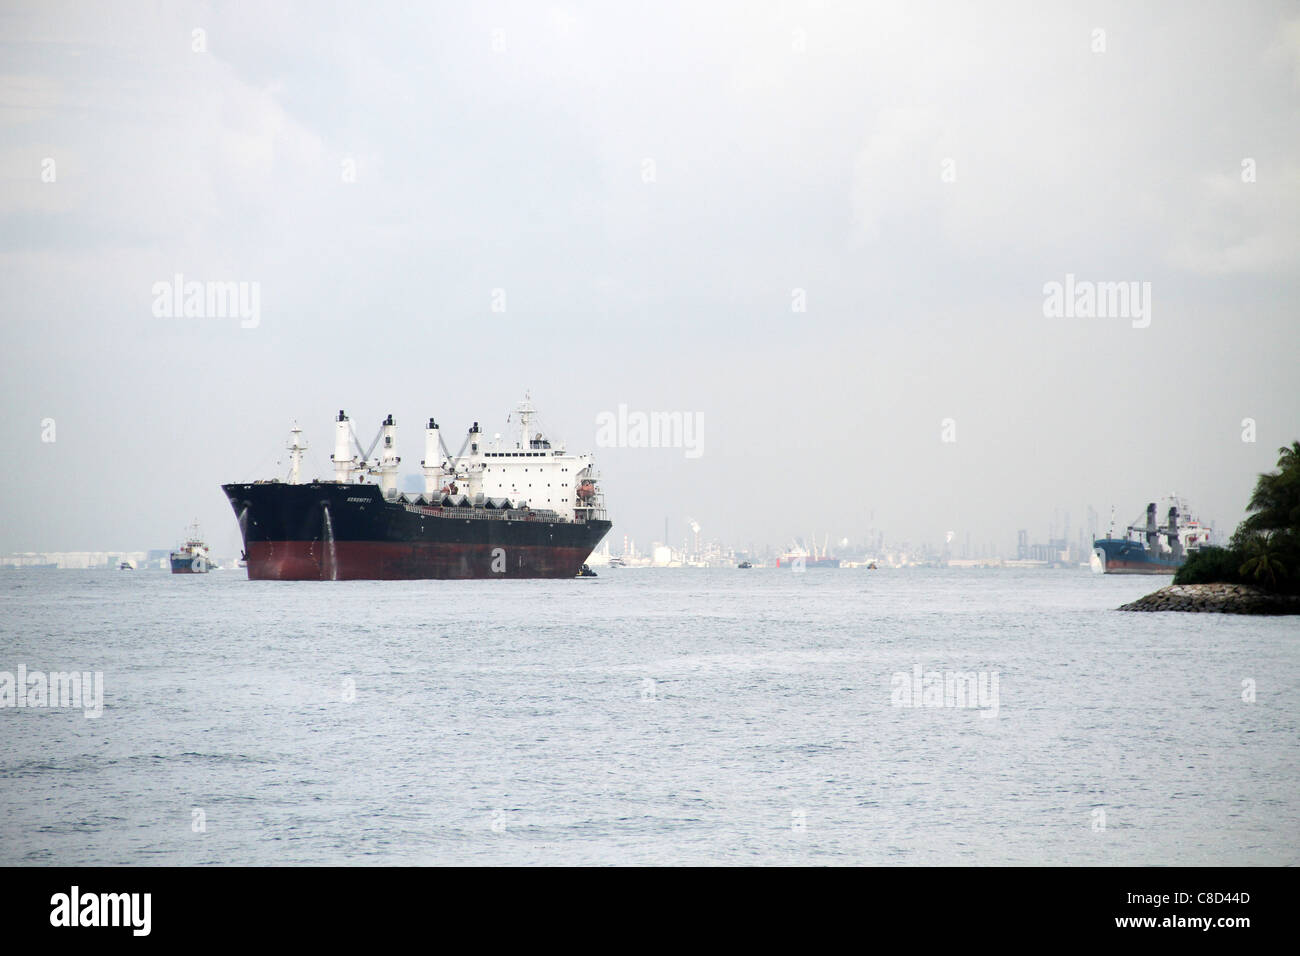 Container ships near the Port of Singapore, South China Sea, Singapore - Stock Image